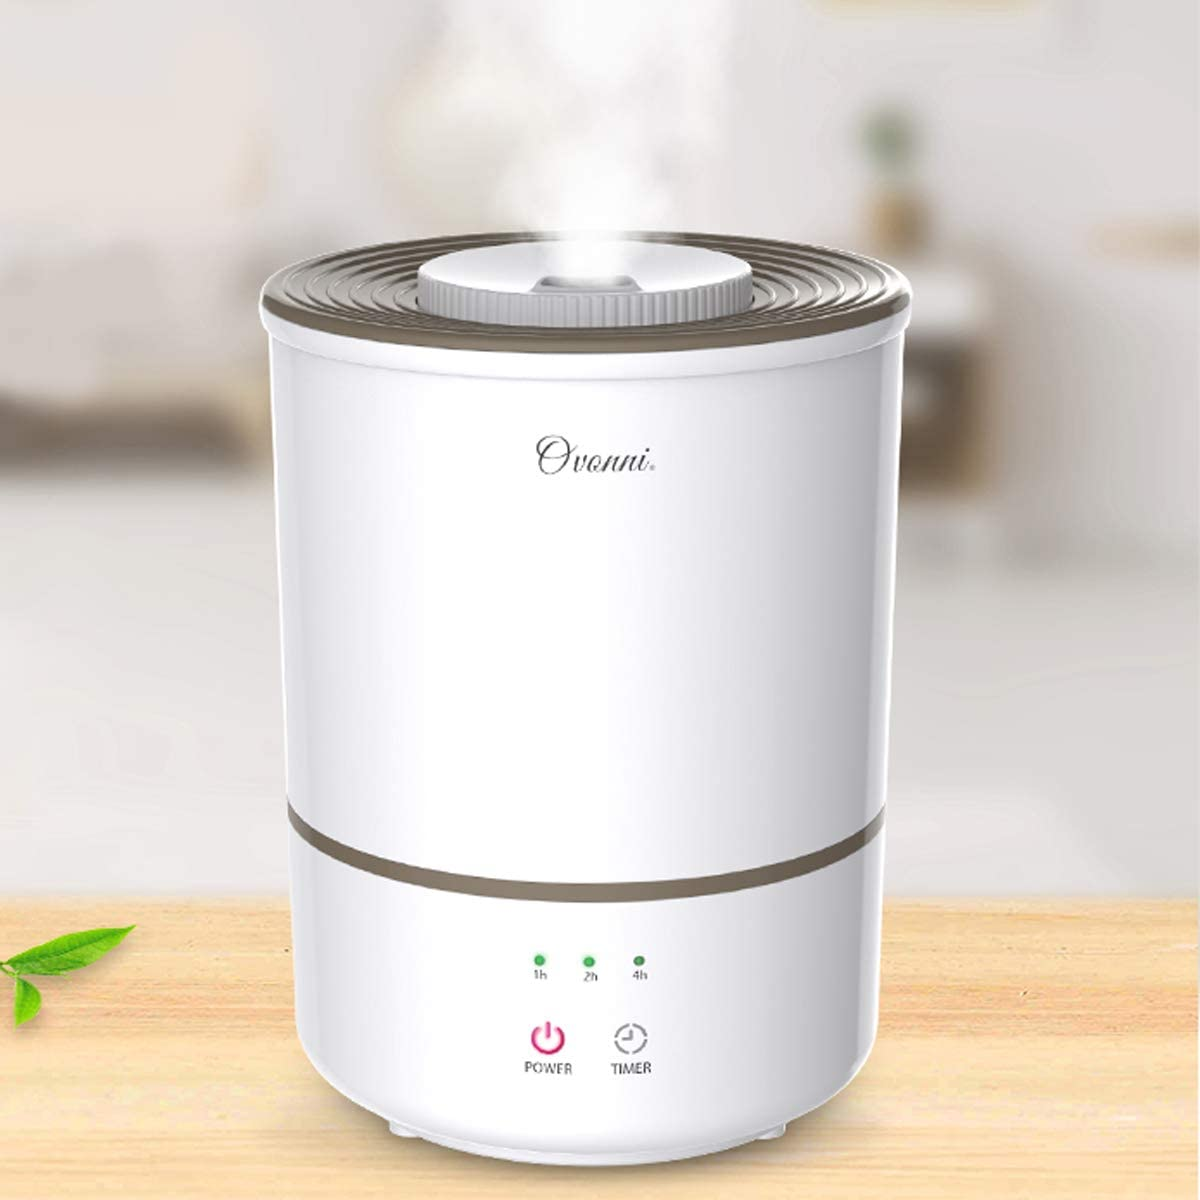 Ovonni Humidifiers 3L Cool Mist Ultrasonic Humidifier for